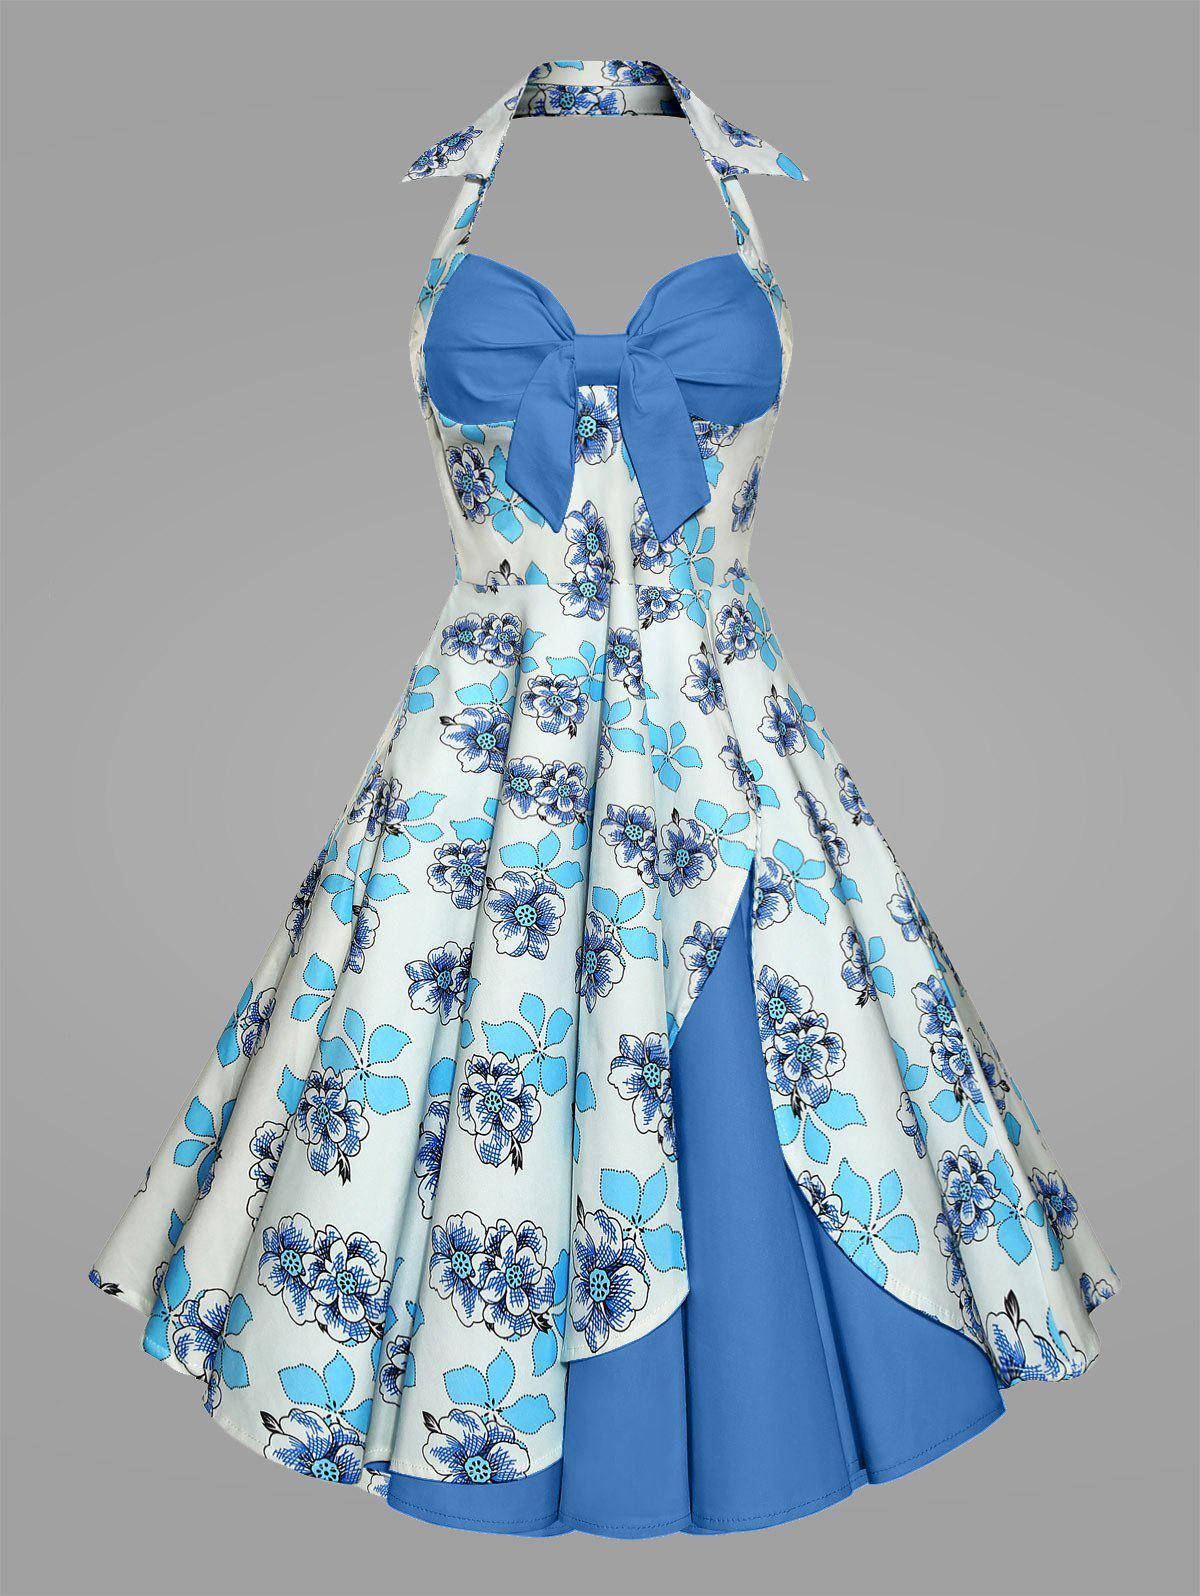 Plus Size Print Halter 50S Vintage Ball DressWOMEN<br><br>Size: 4XL; Color: BLUE; Style: Vintage; Material: Cotton,Cotton Blend,Polyester; Silhouette: Ball Gown; Dresses Length: Mid-Calf; Neckline: Halter; Sleeve Length: Sleeveless; Waist: High Waisted; Embellishment: Backless,Vintage; Pattern Type: Floral,Print; With Belt: No; Season: Spring,Summer; Weight: 0.5300kg; Package Contents: 1 x Dress;